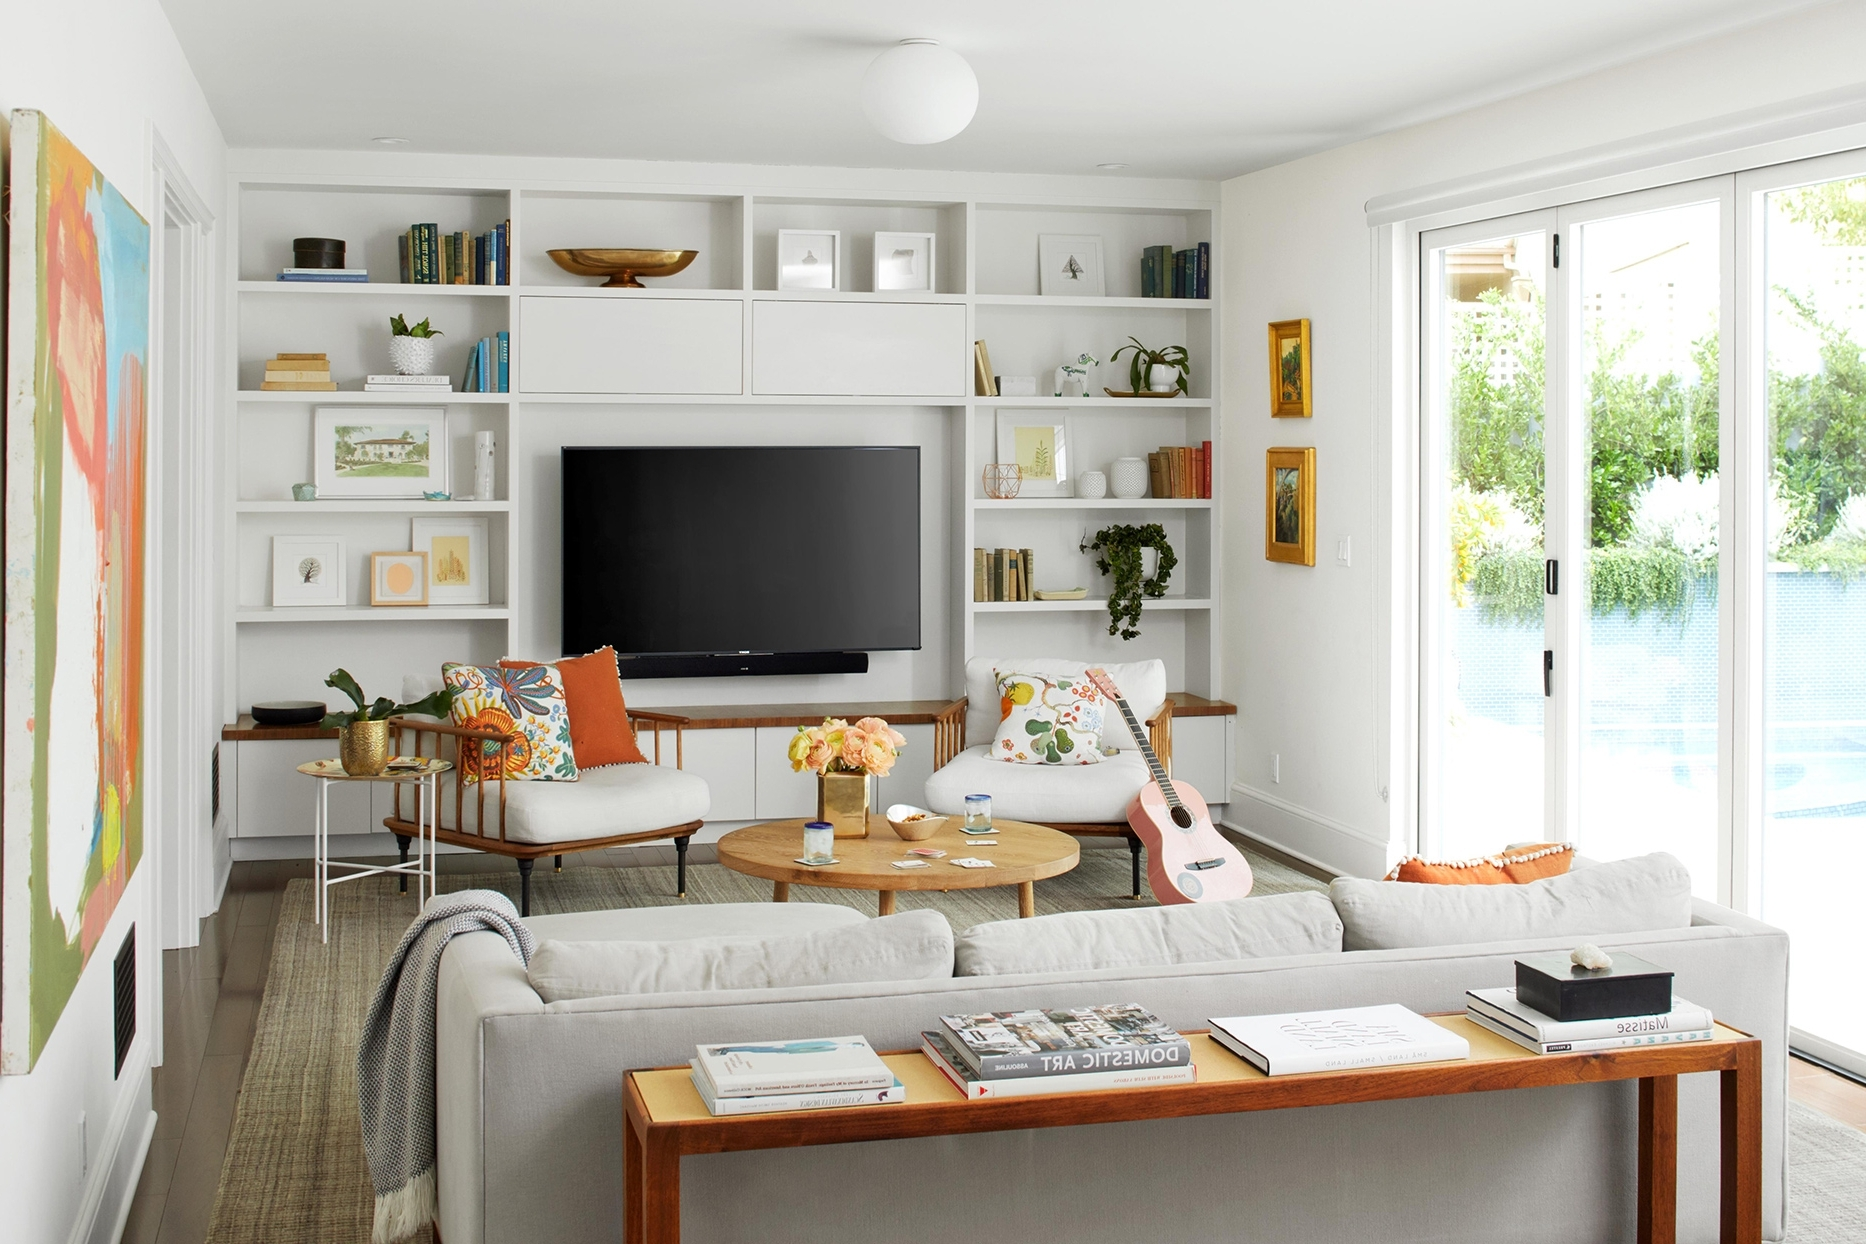 15 Stylish Ways To Decorate With A Tv | Better Homes & Gardens 40+ Decorating Living Room With Flat Screen Tv Inspirations